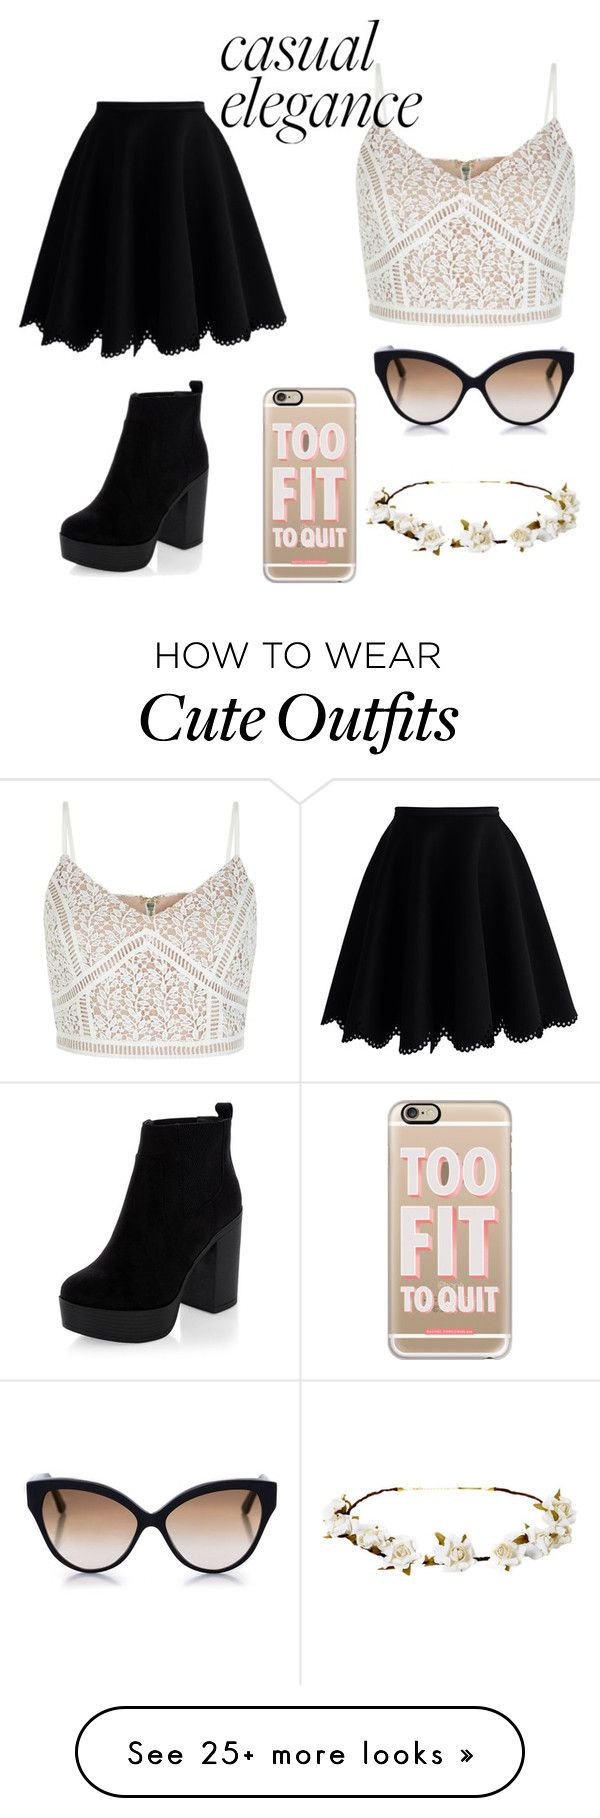 """Cute outfit "" by lisaleemason on Polyvore featuring Chicwish, Cutler and Gross, Casetify and Cult Gaia"